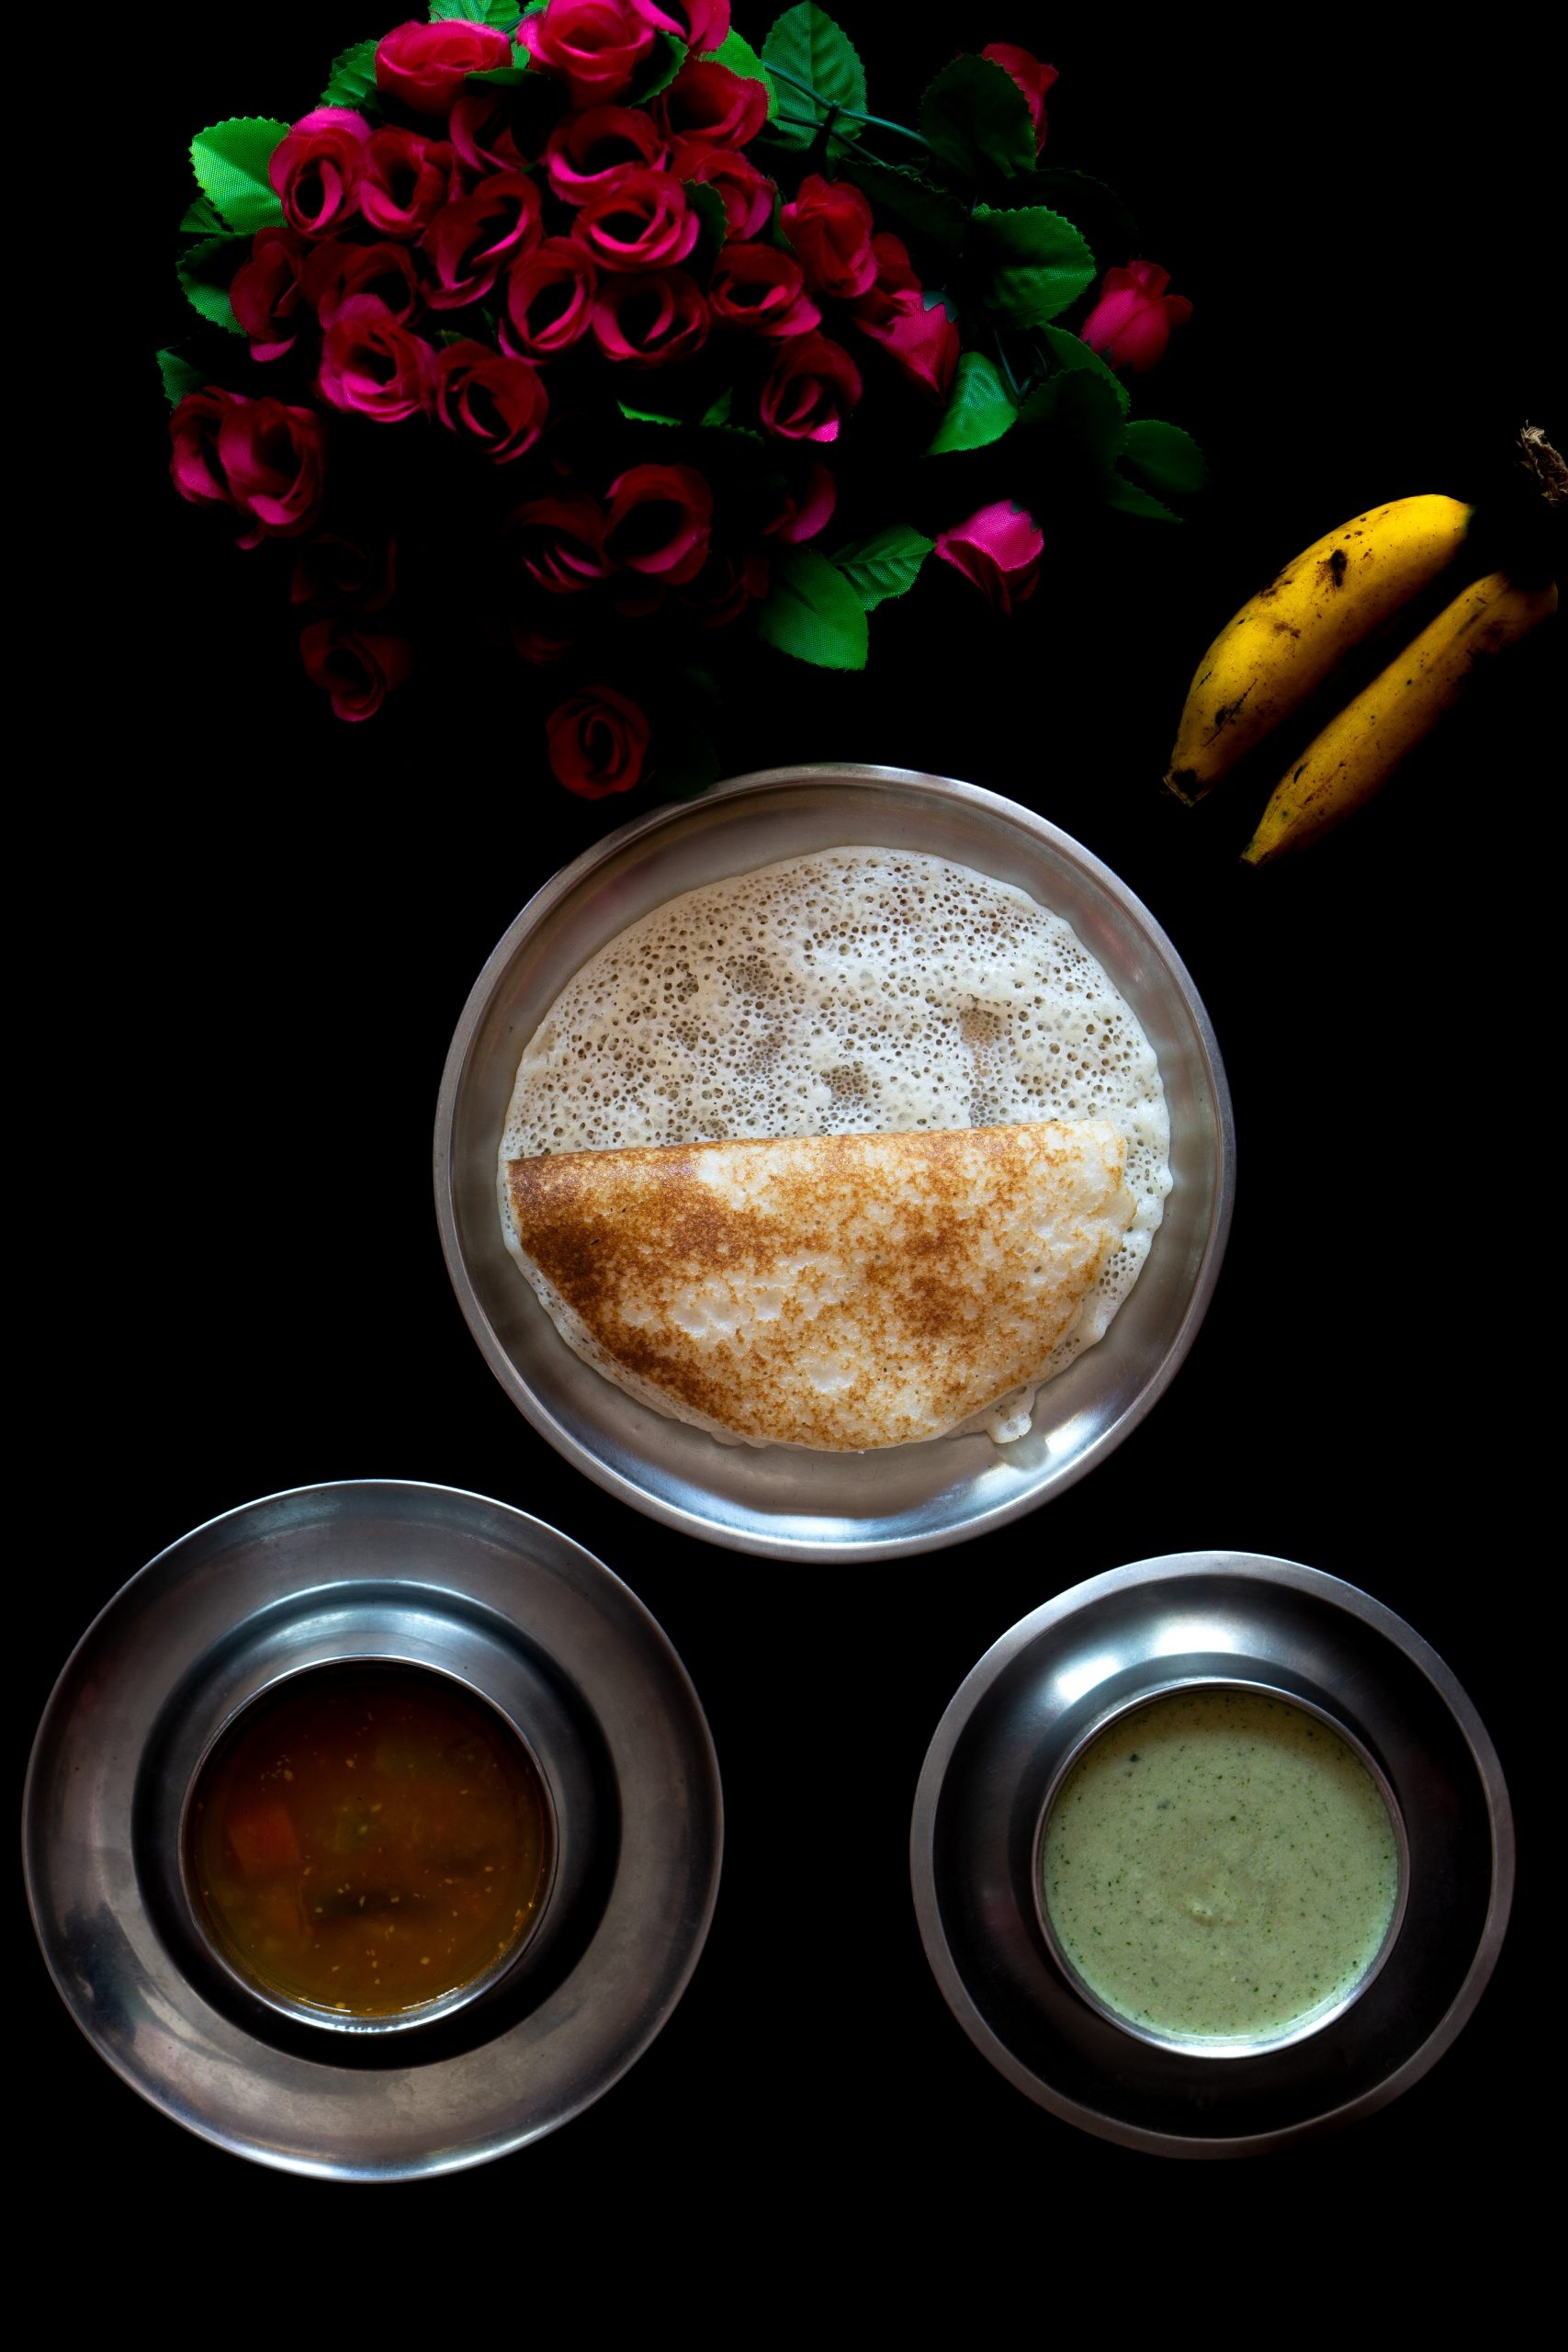 dosa with sambar, chutney and bananas